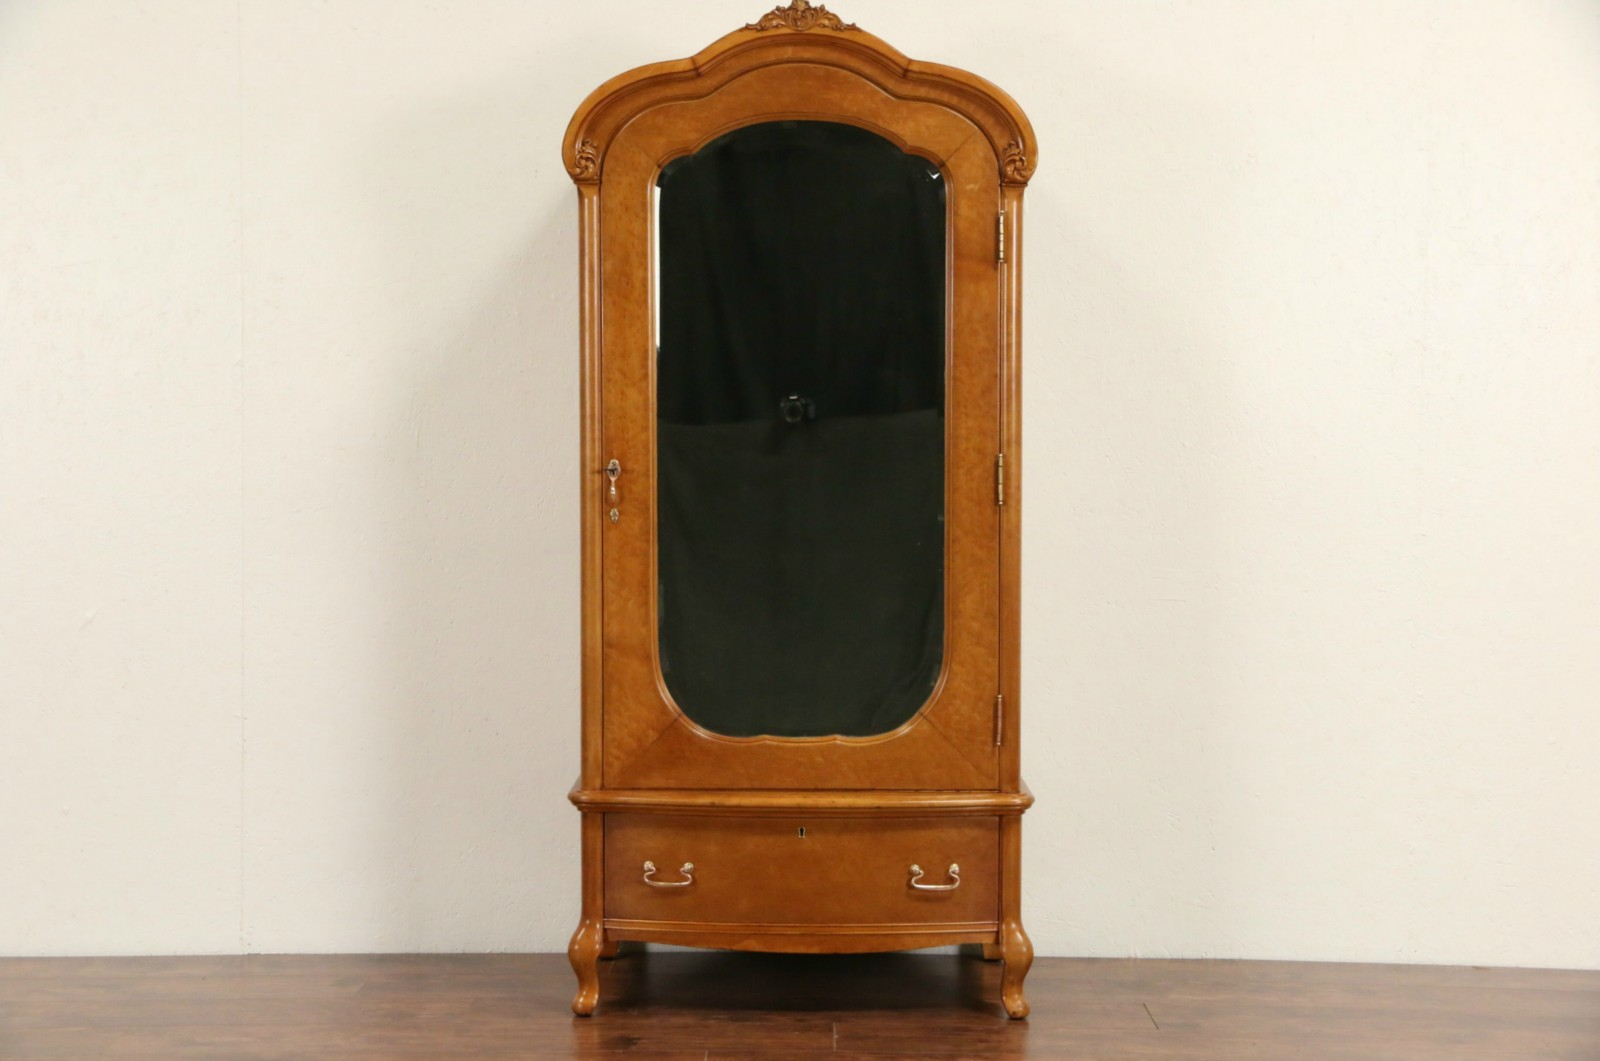 Sold Curly Birdseye Maple 1910 Antique Armoire Wardrobe Or Closet Signed Widdicomb Harp Gallery Antiques Furniture